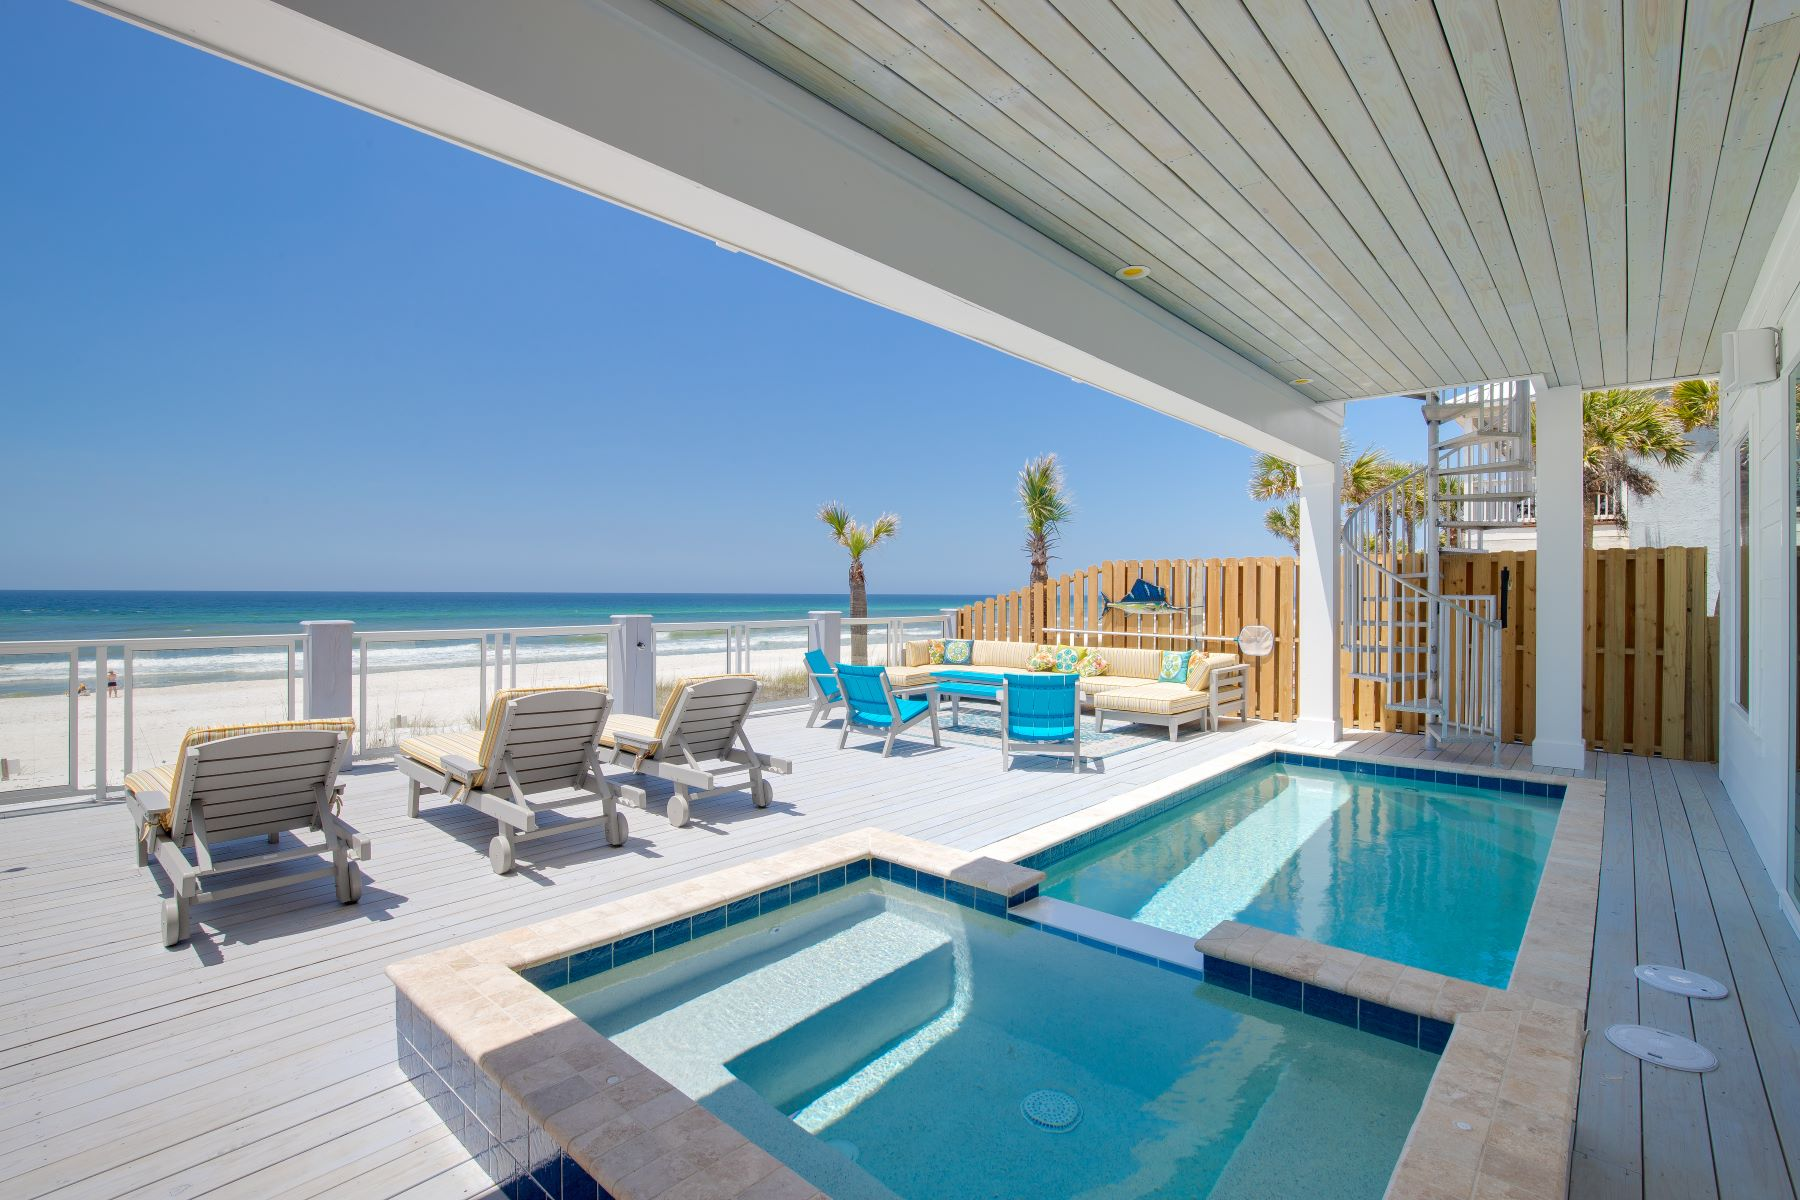 Single Family Homes for Sale at Gulf-front Custom Beach House with Impressive Space and Two Kitchens 20109 W Front Beach Road B Panama City Beach, Florida 32413 United States